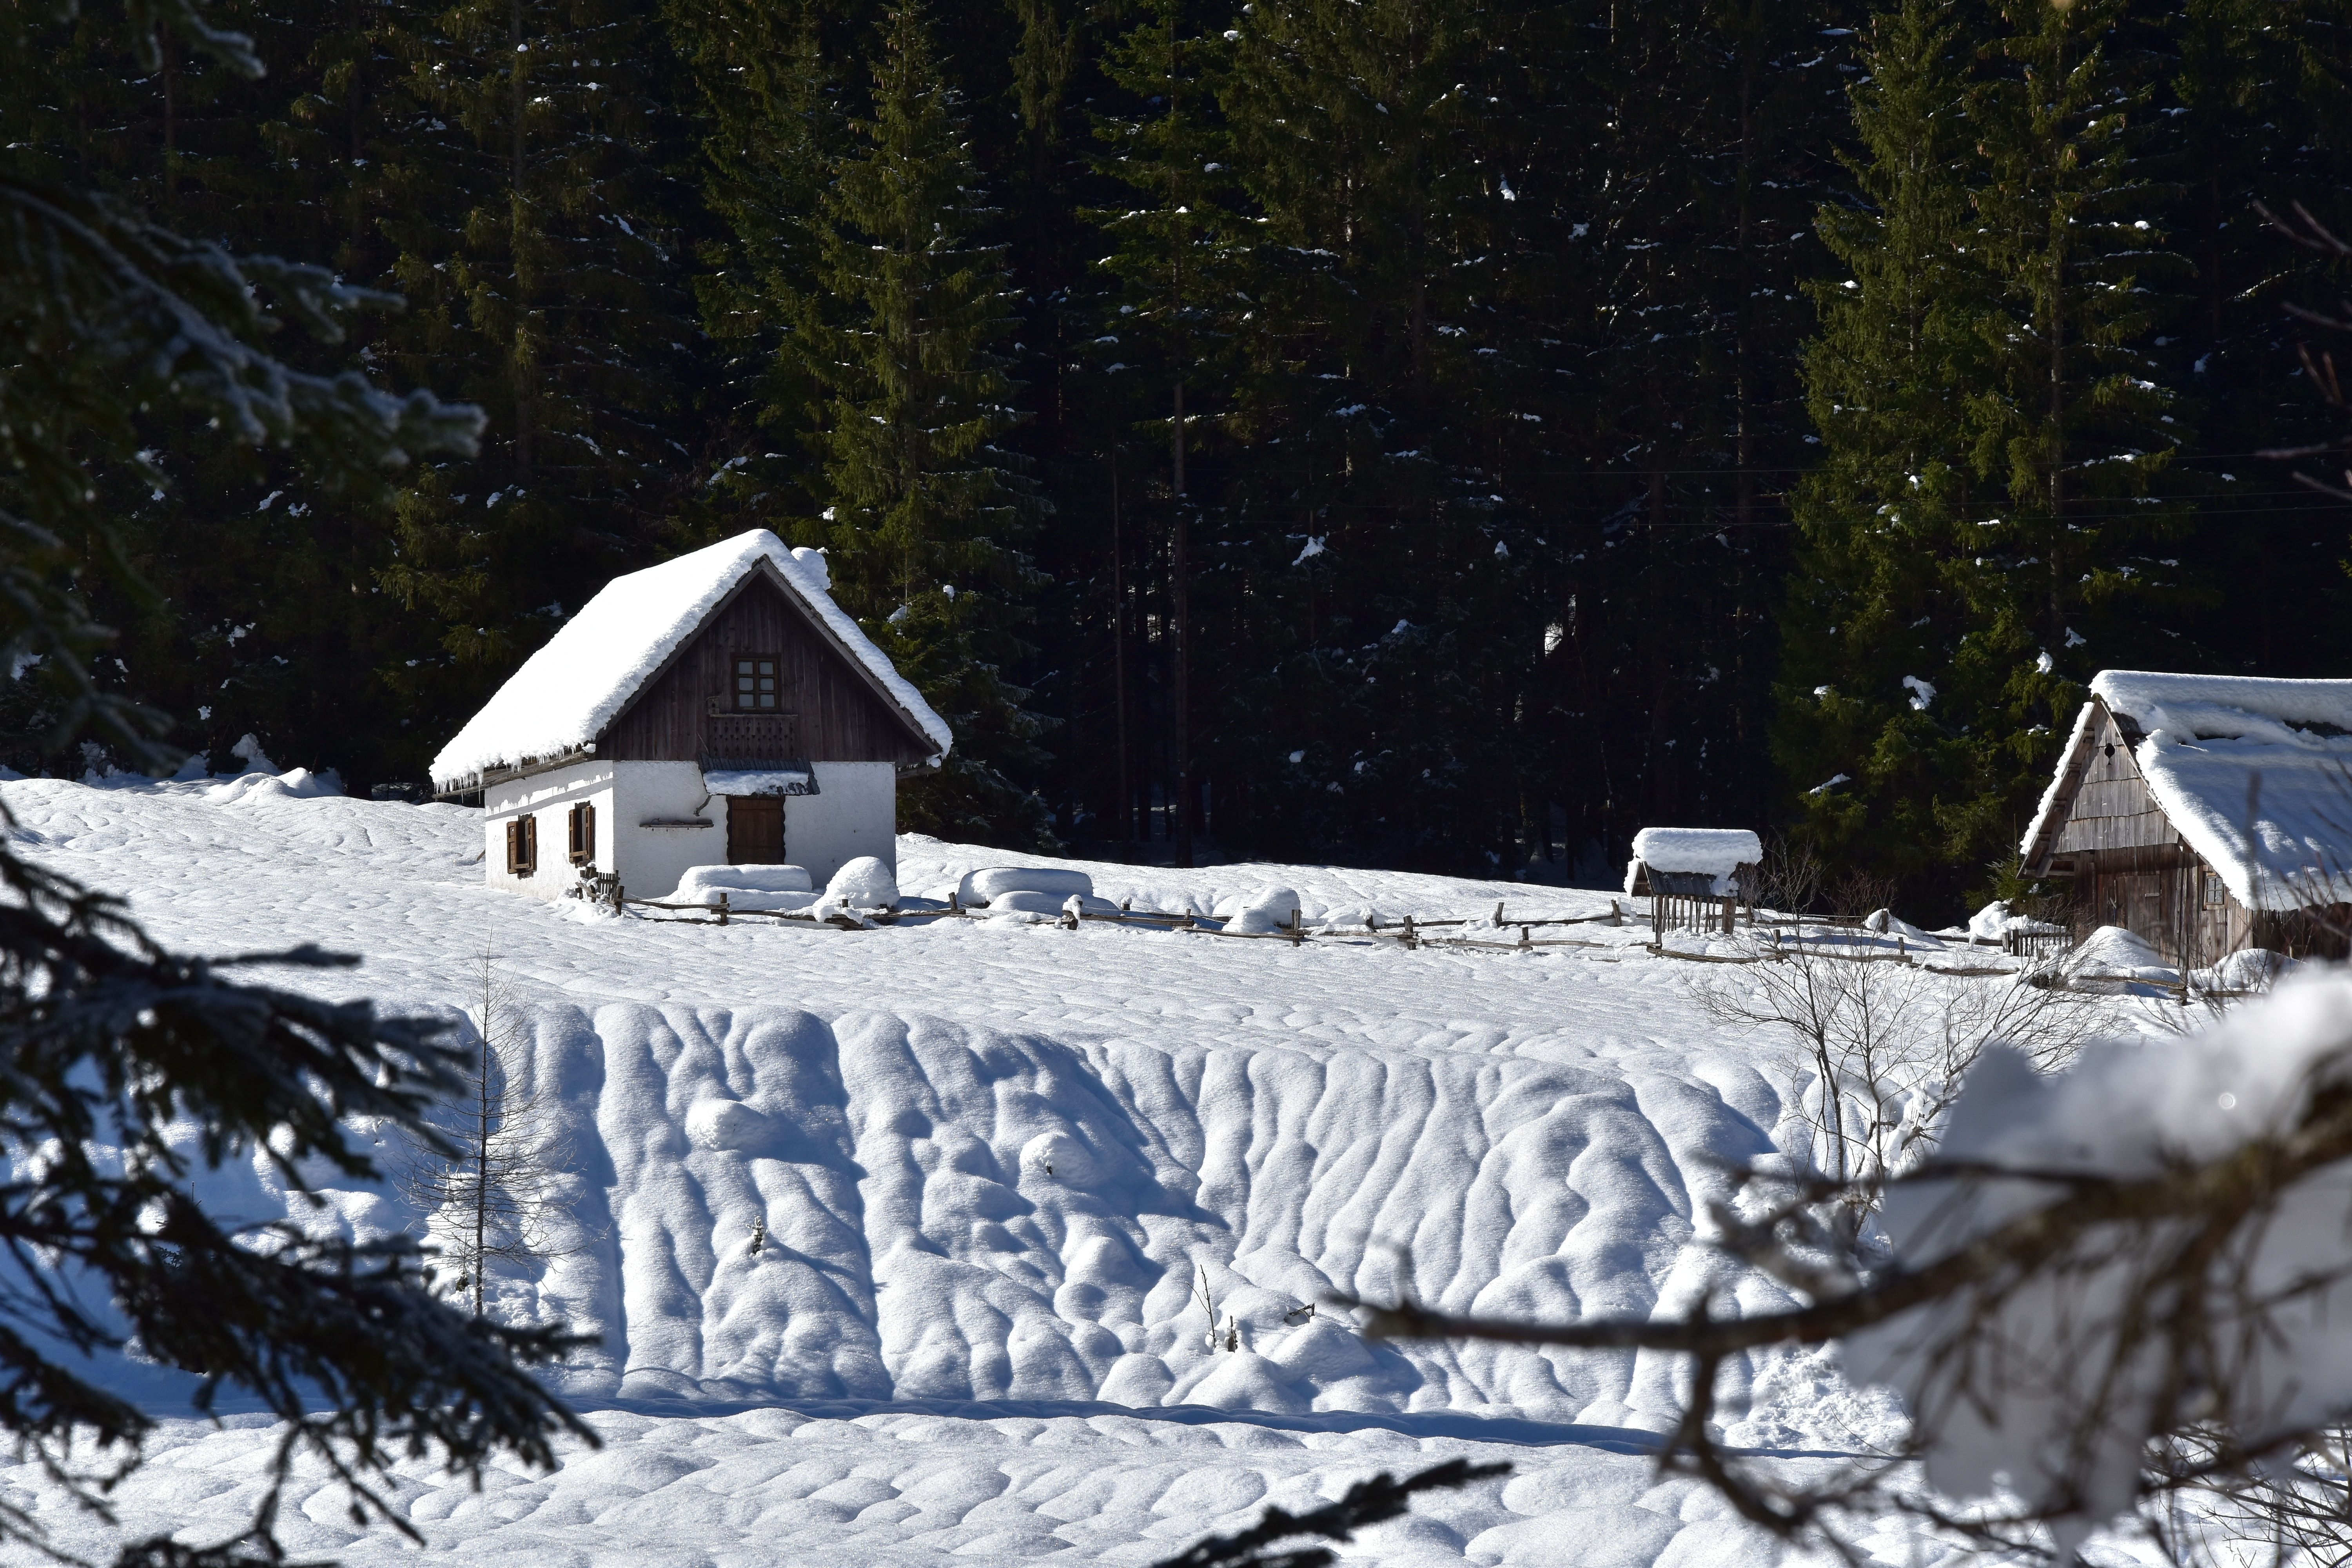 houses on snow covered ground near trees at daytime